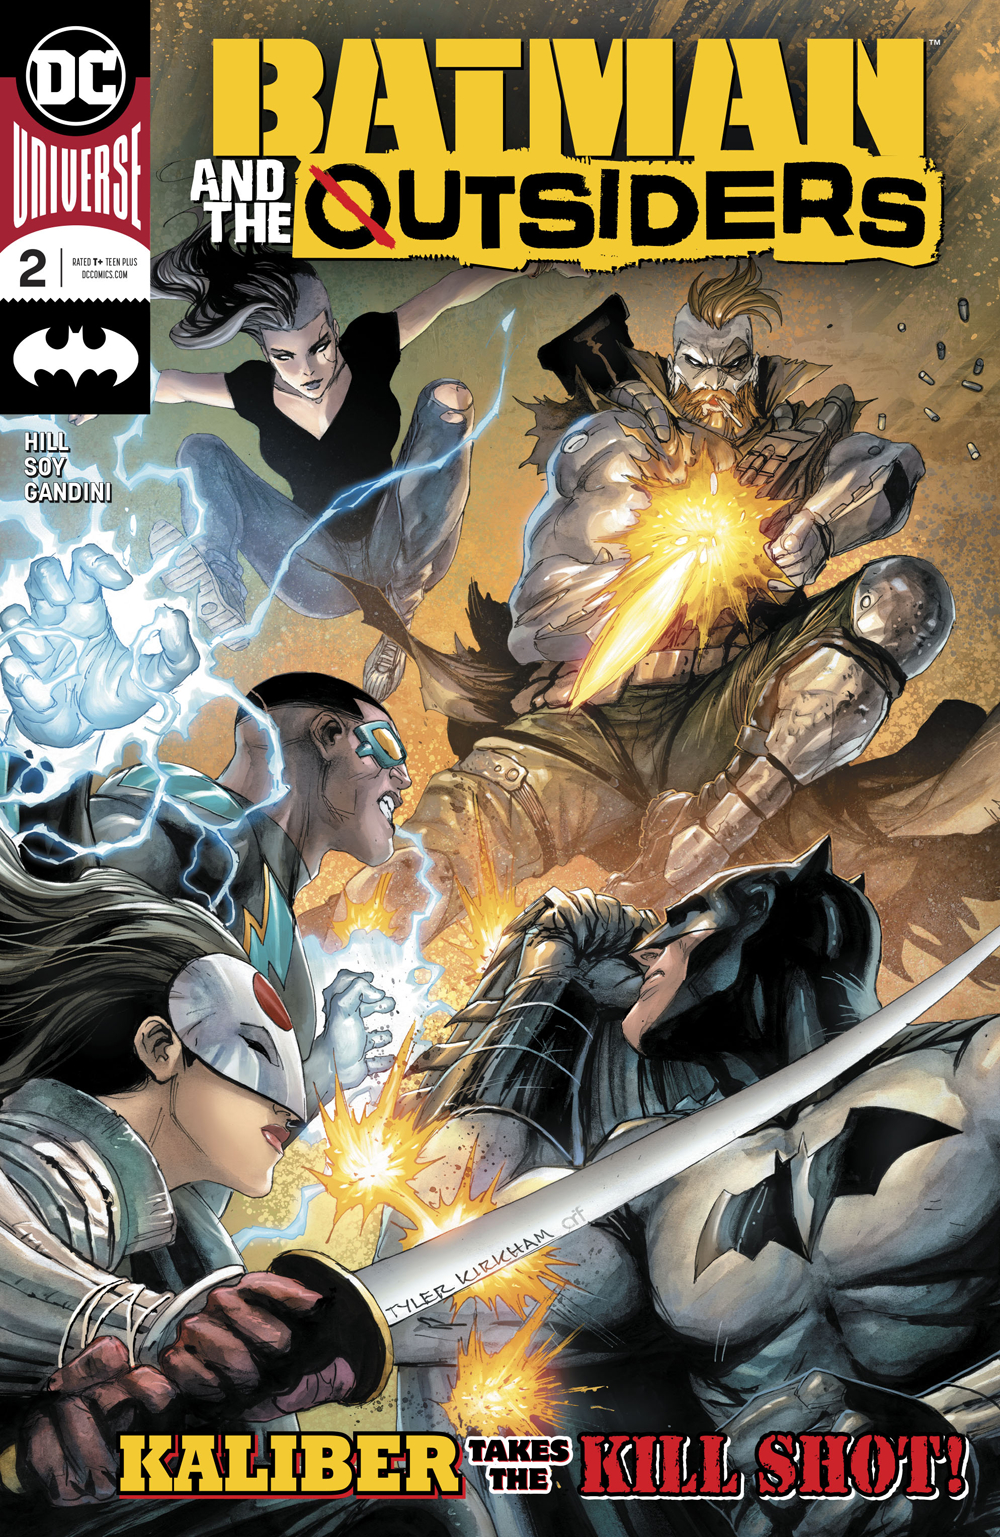 BATMAN AND THE OUTSIDERS #2 (RES)